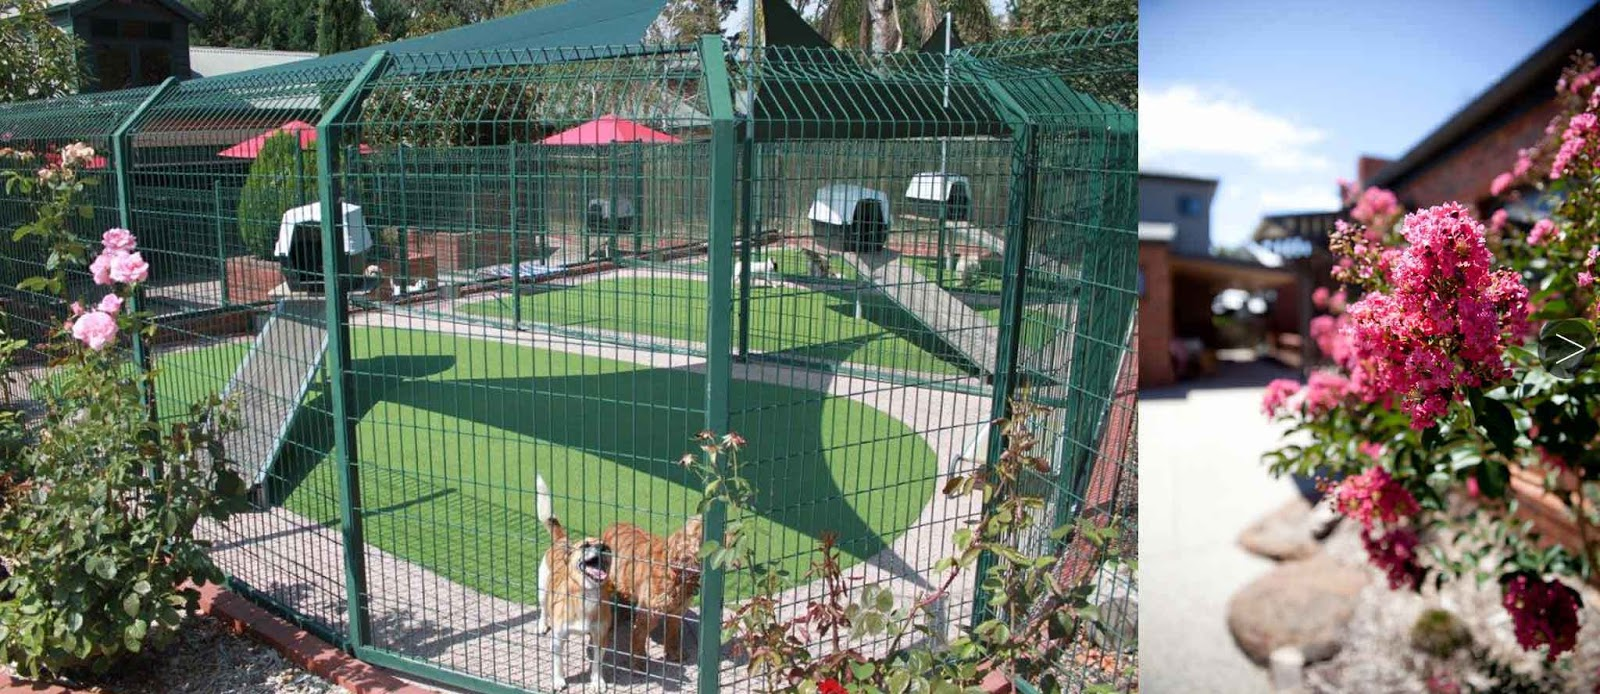 Dog Boarding - Cottage Kennels Victoria - Exercise Runs